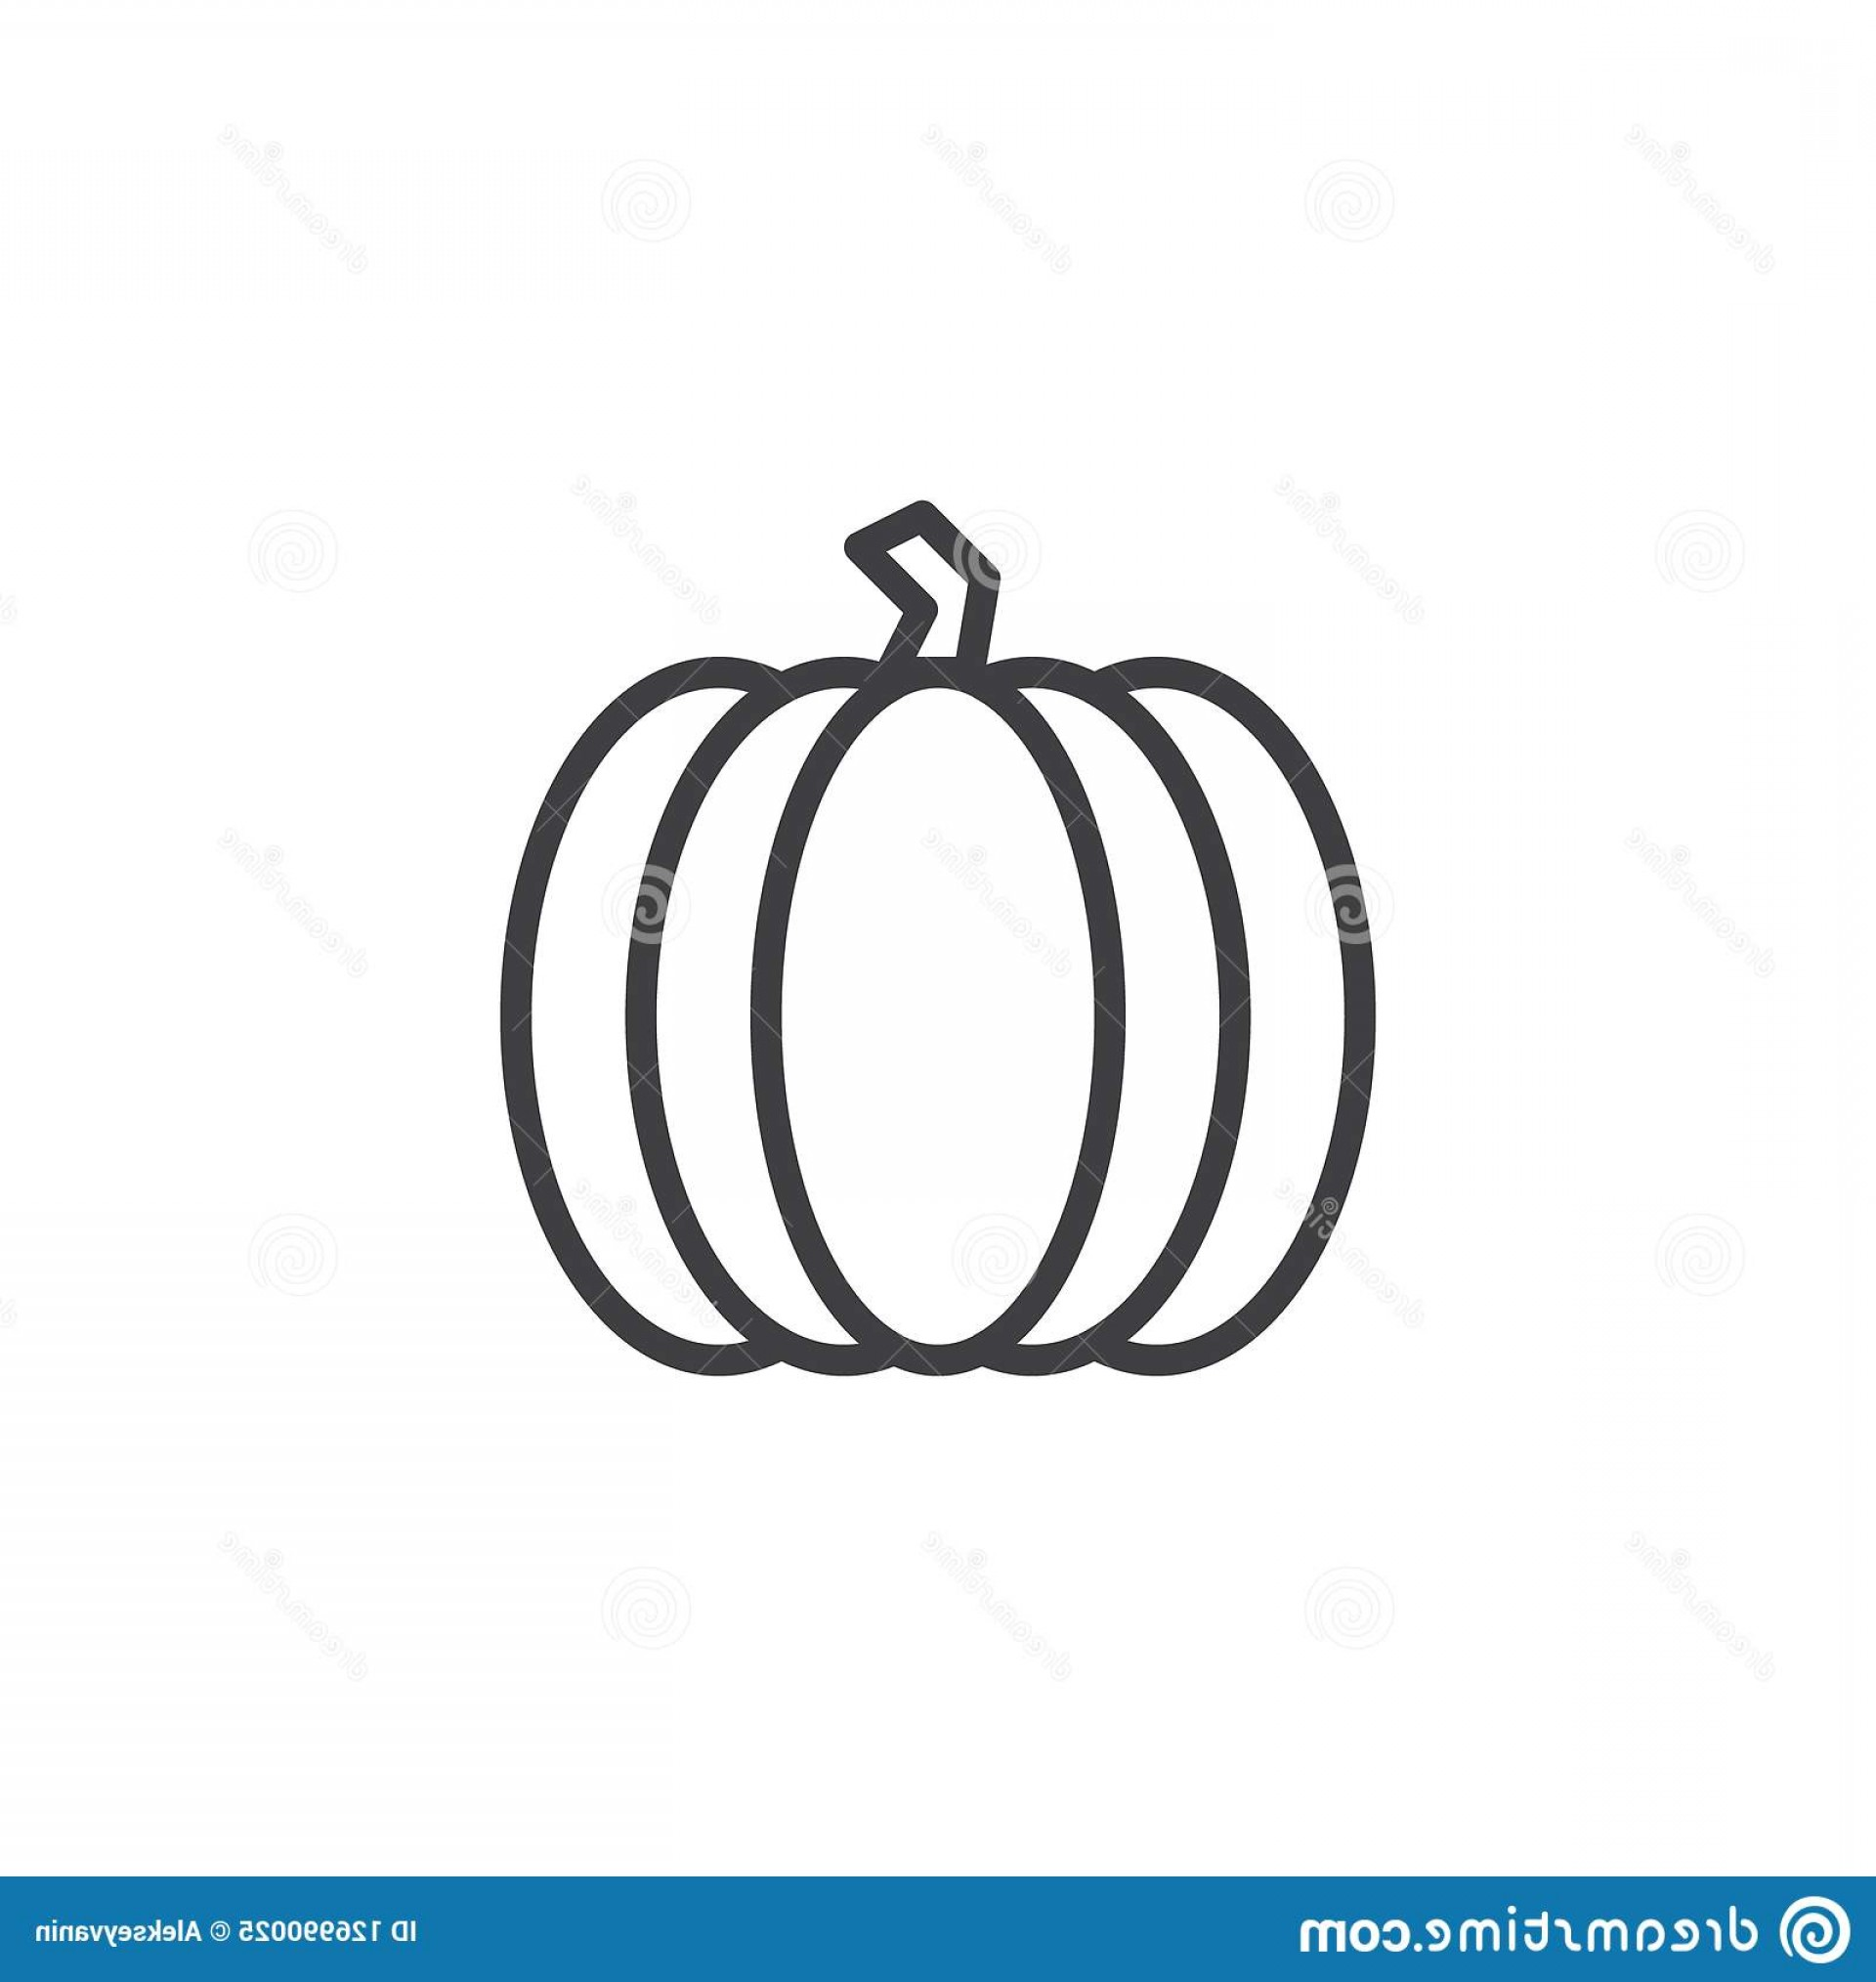 Pumpkin Outline Vector Art: Pumpkin Outline Icon Linear Style Sign Mobile Concept Web Design Vegetable Simple Line Vector Icon Symbol Logo Image